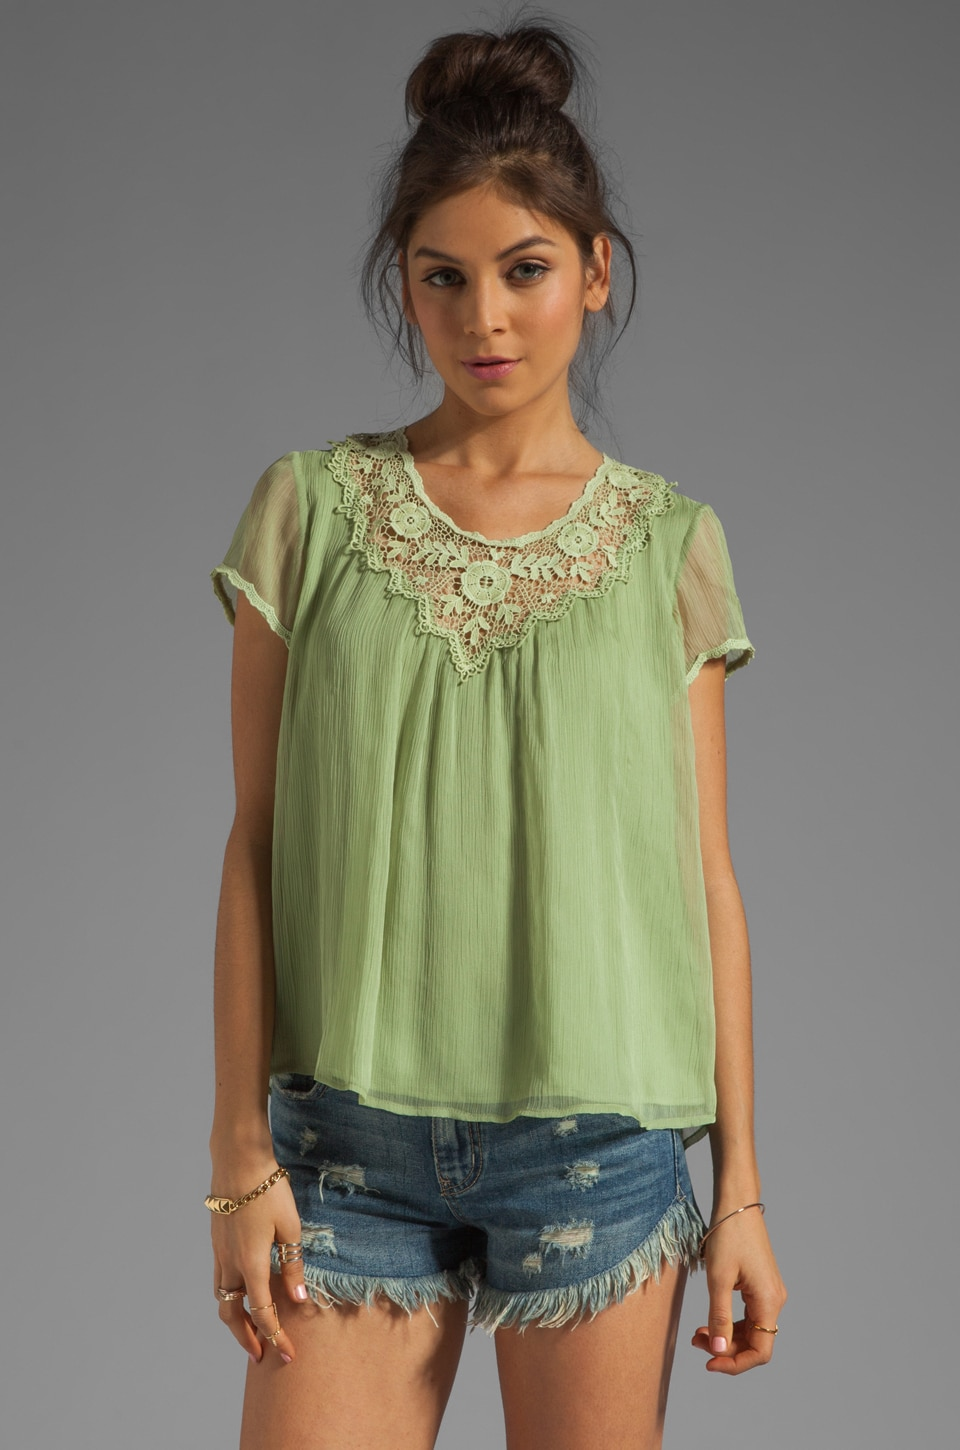 Beyond Vintage Floral Crochet Yoke Top in Pistachio